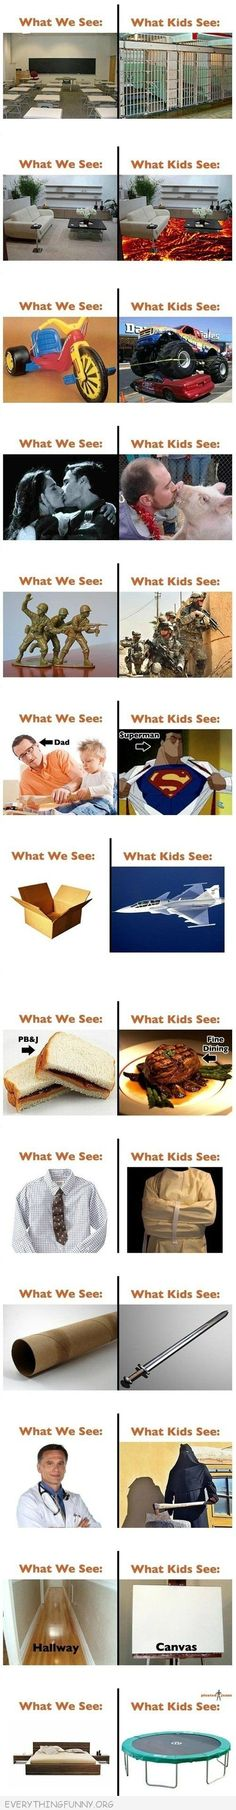 What we see - what kids see. I'm a 14 year old girl, so I'm technically still a kid.